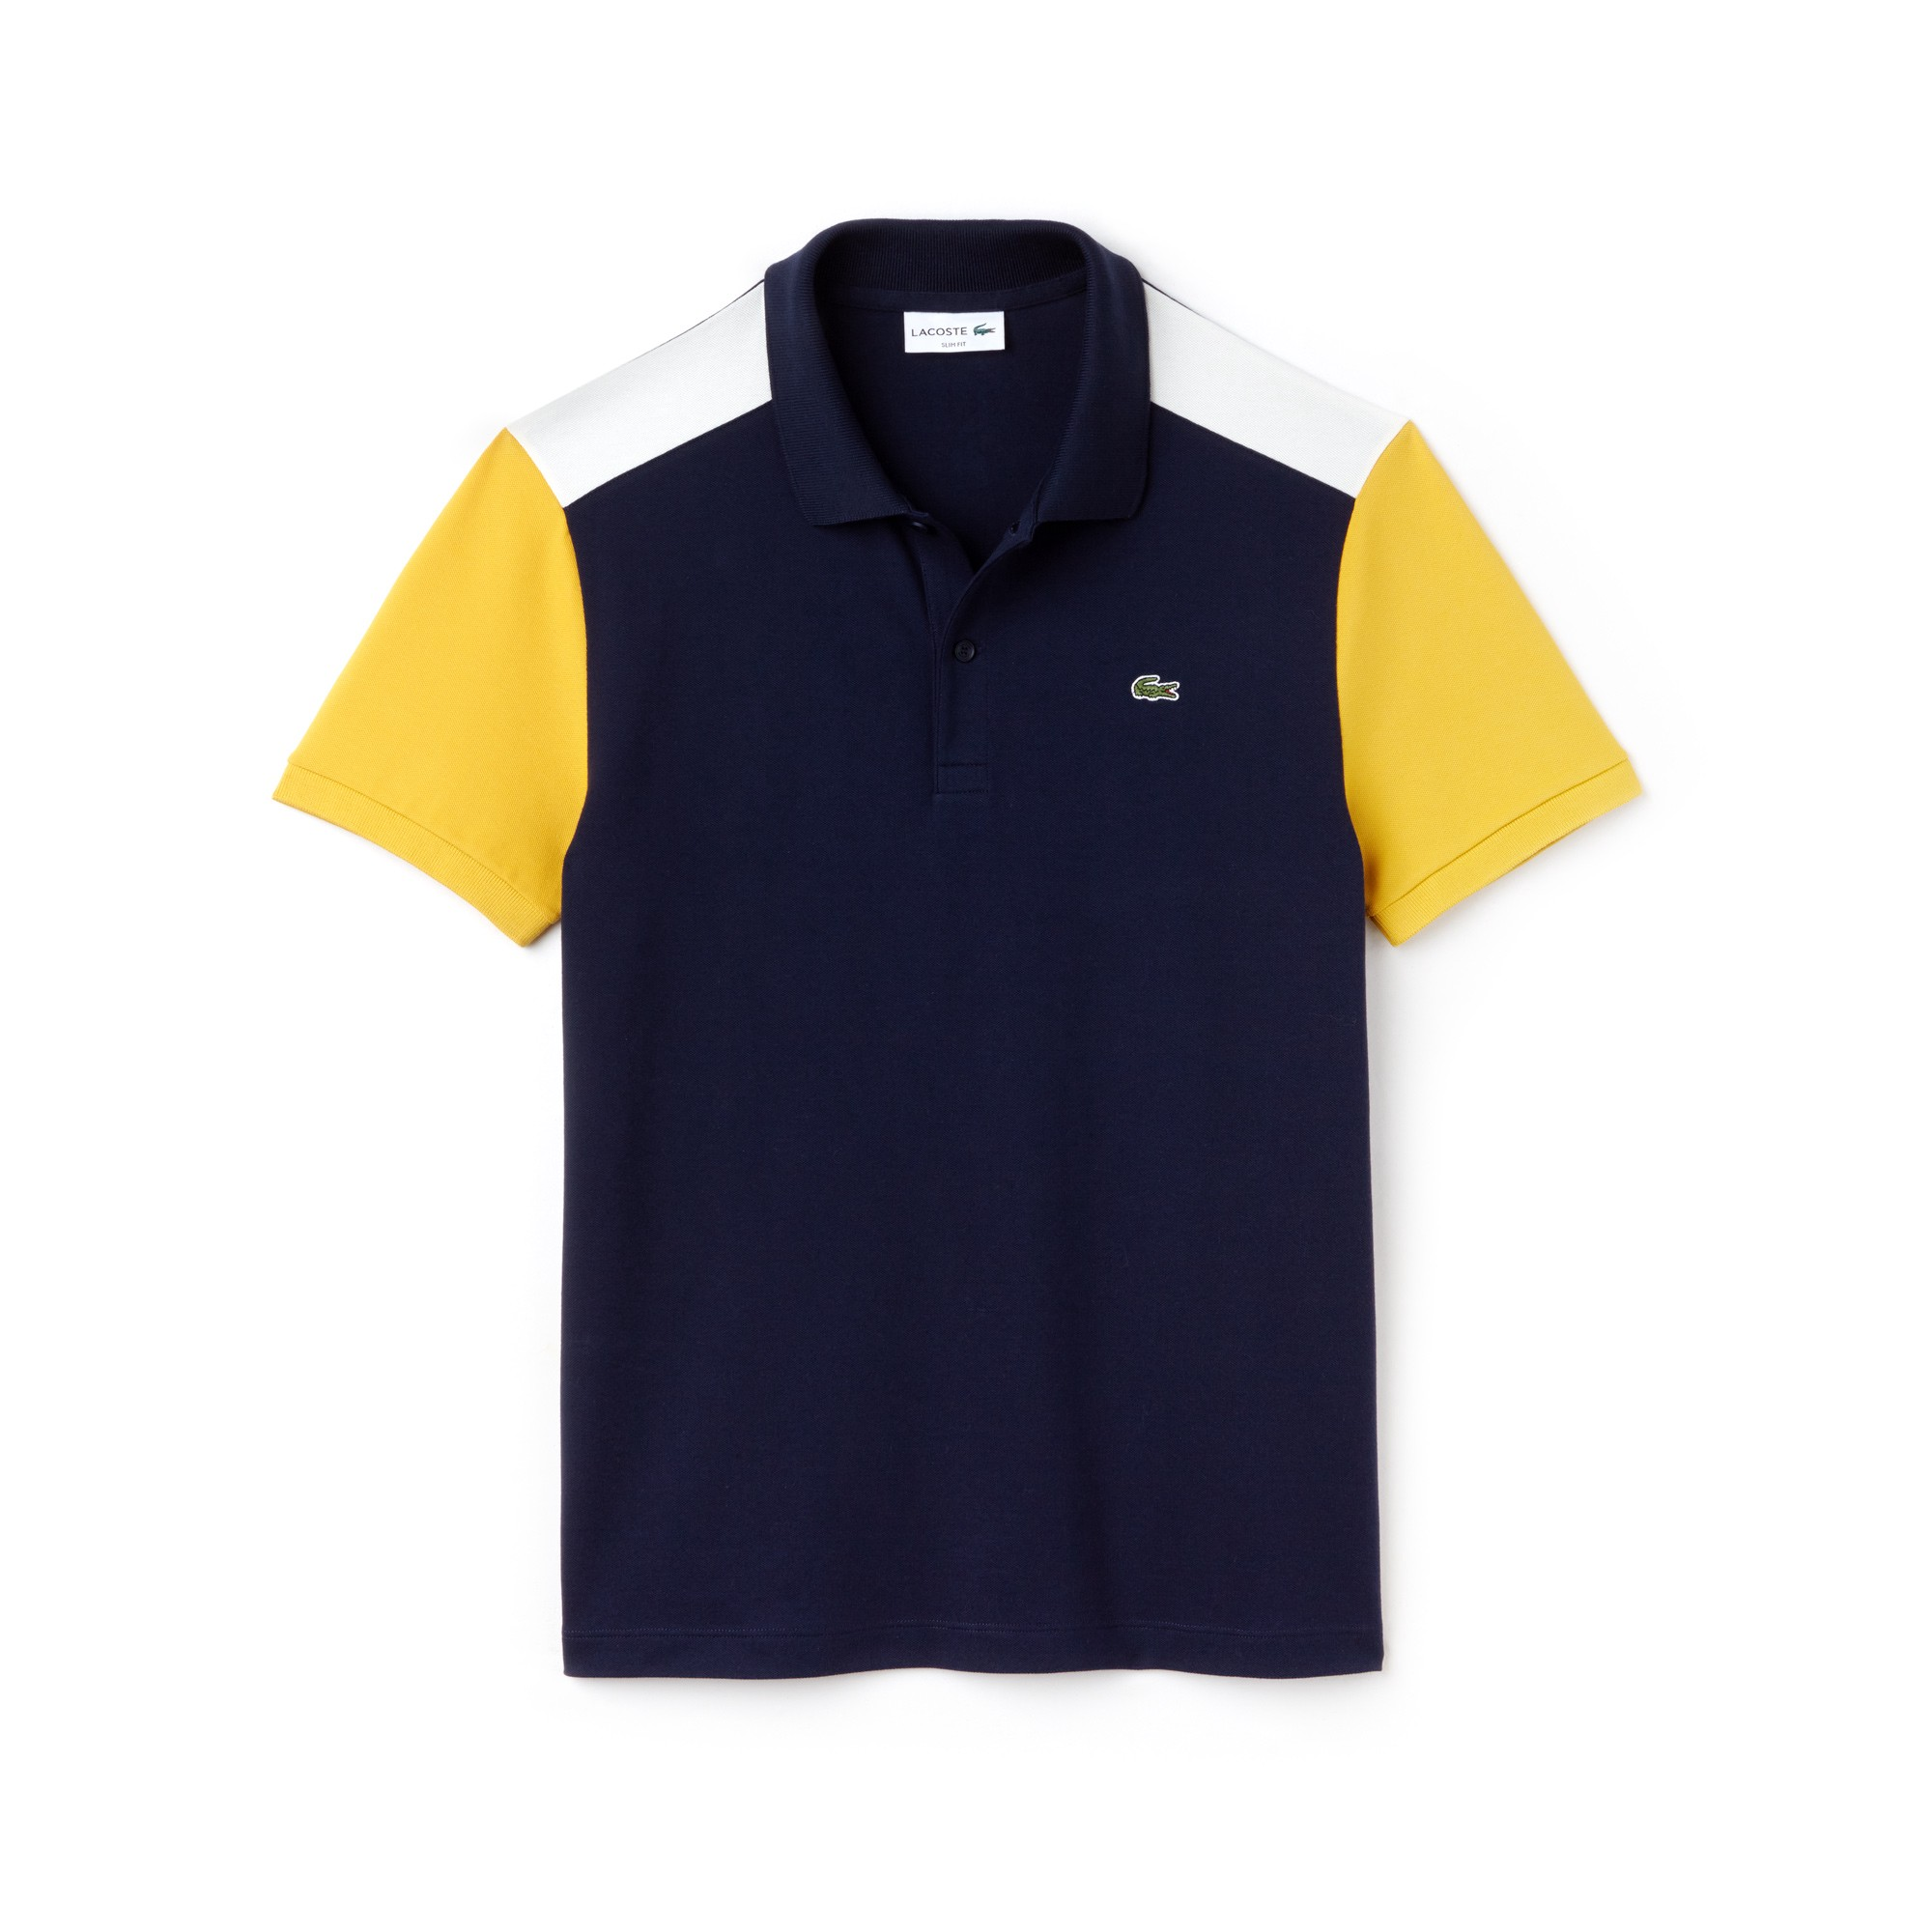 0e0eb99a0dc04 Lacoste Men s Slim Fit Colorblock Stretch Pima Cotton Piqué Polo - Inkwell Navy  Blue-Flour S 3 Green